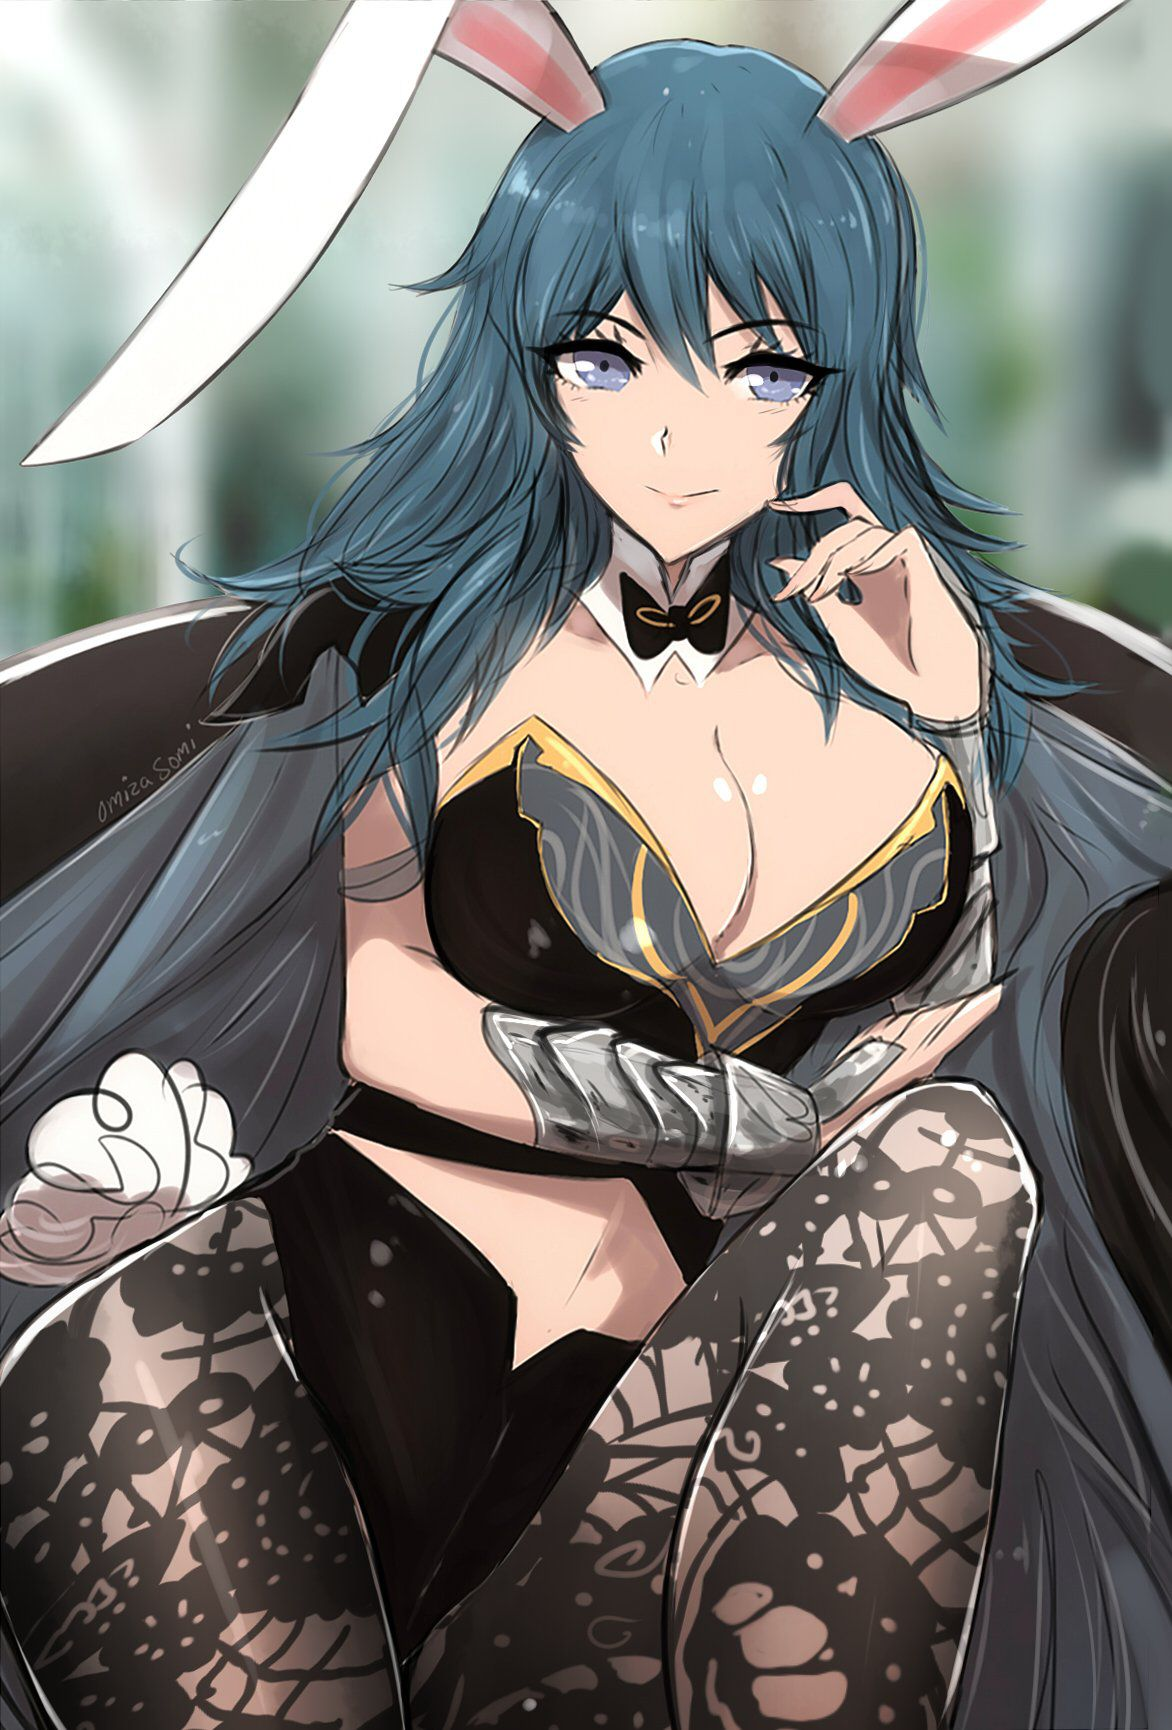 byleth_(fire_emblem)_(female)066